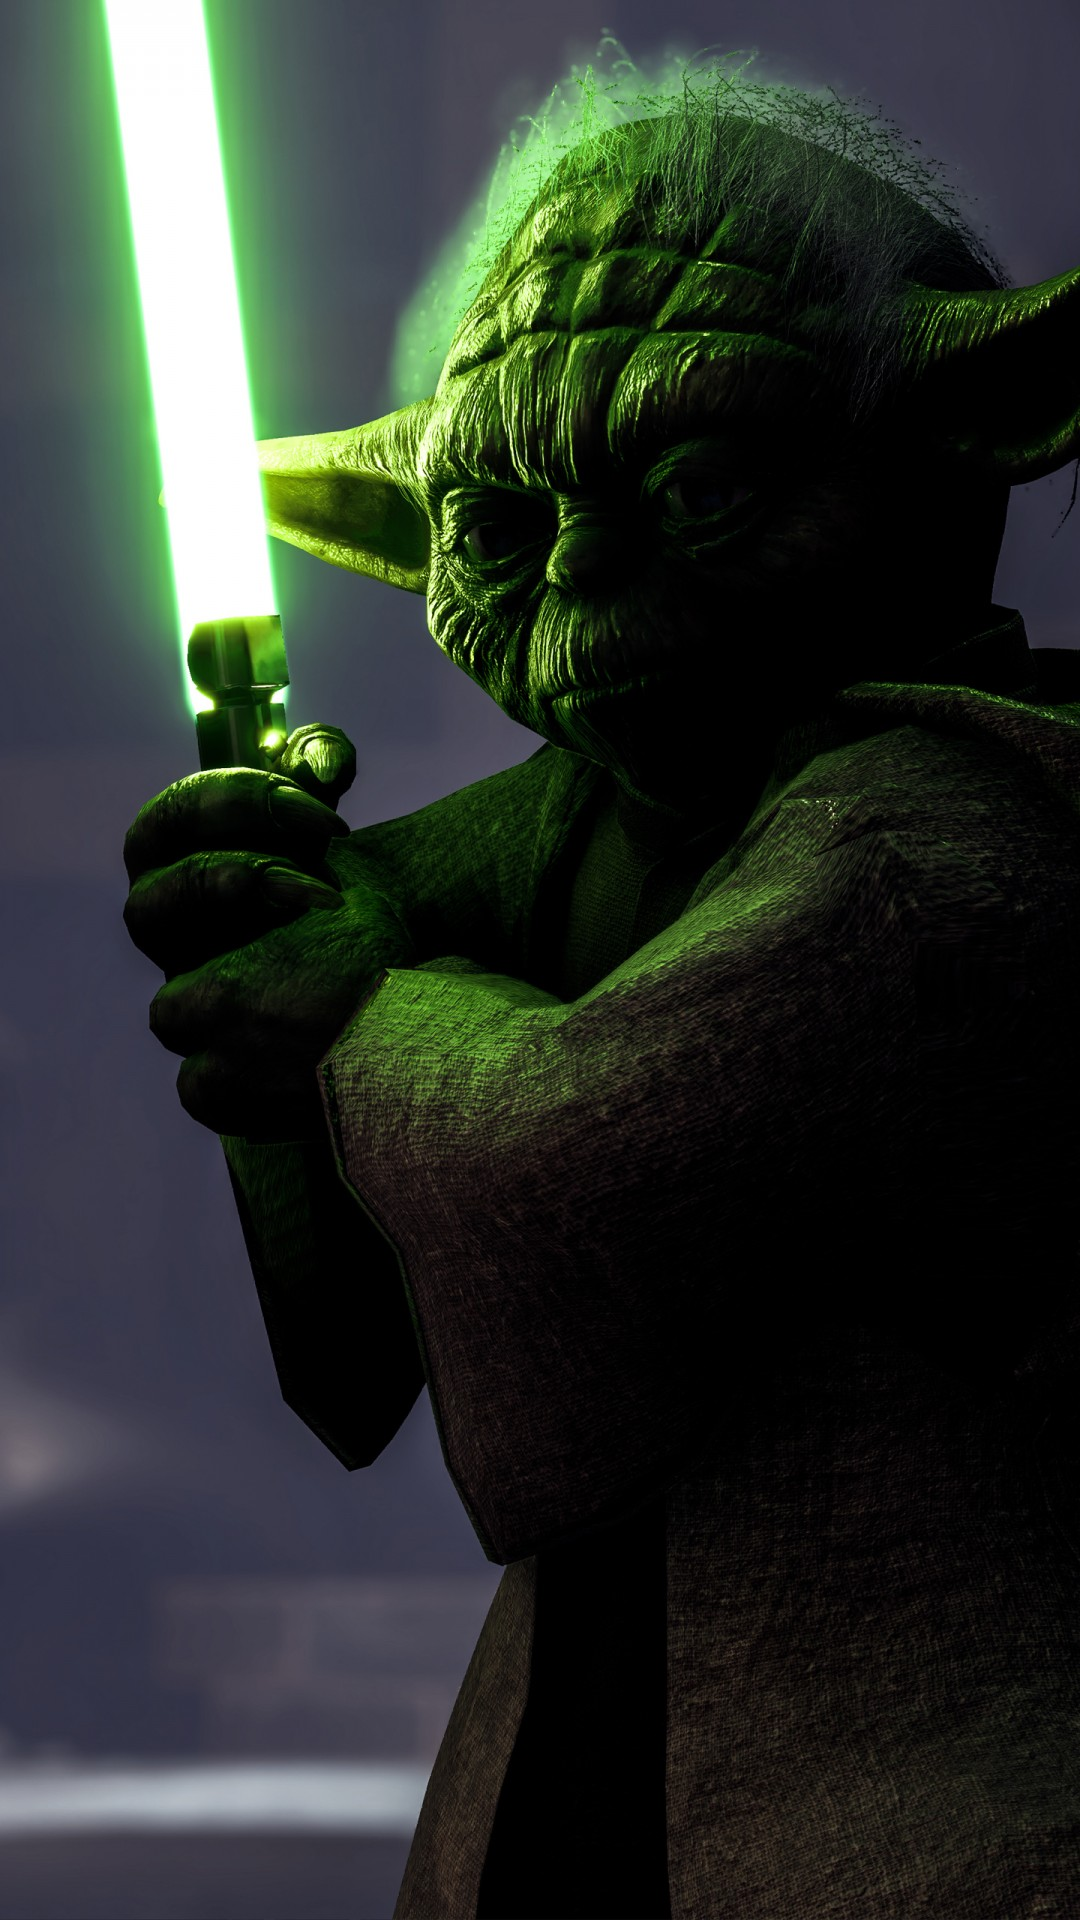 Star Wars Yoda Wallpaper Posted By Michelle Simpson